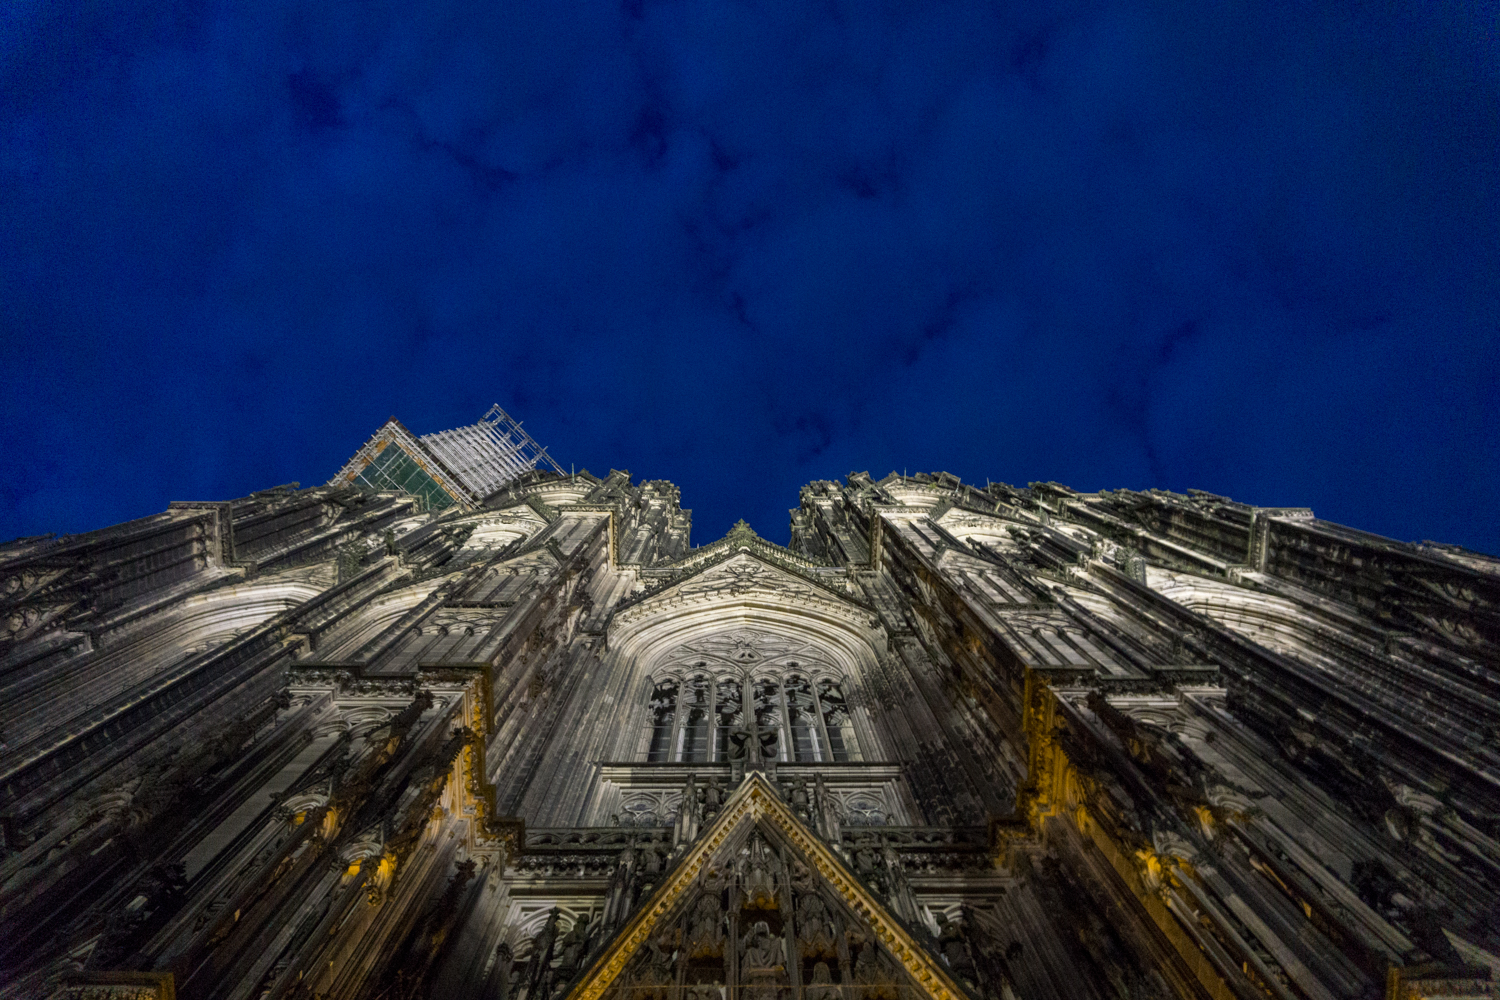 COLOGNE: The Kölner Dom at night